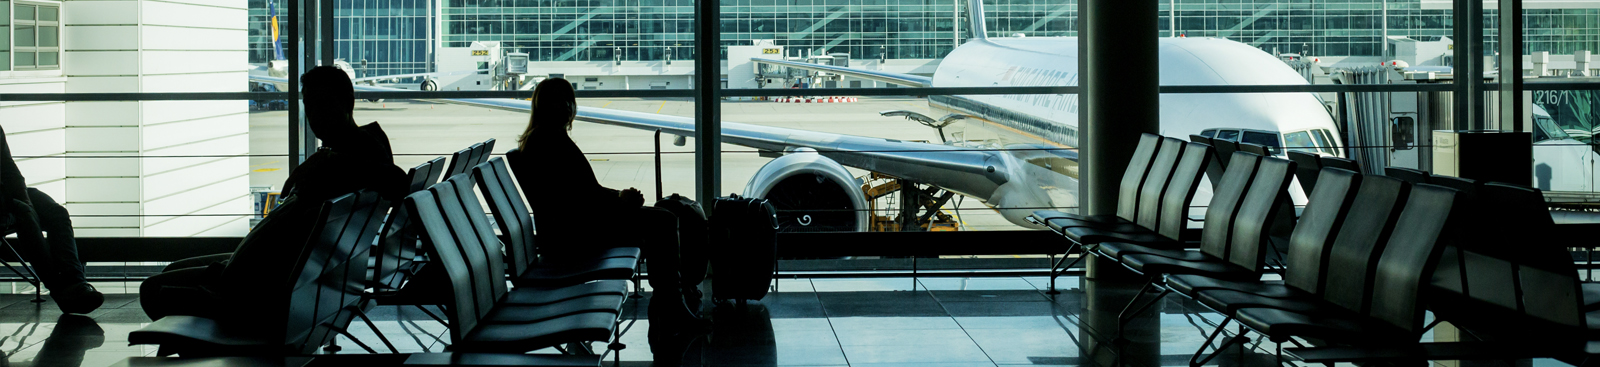 Airport transfers in Surrey